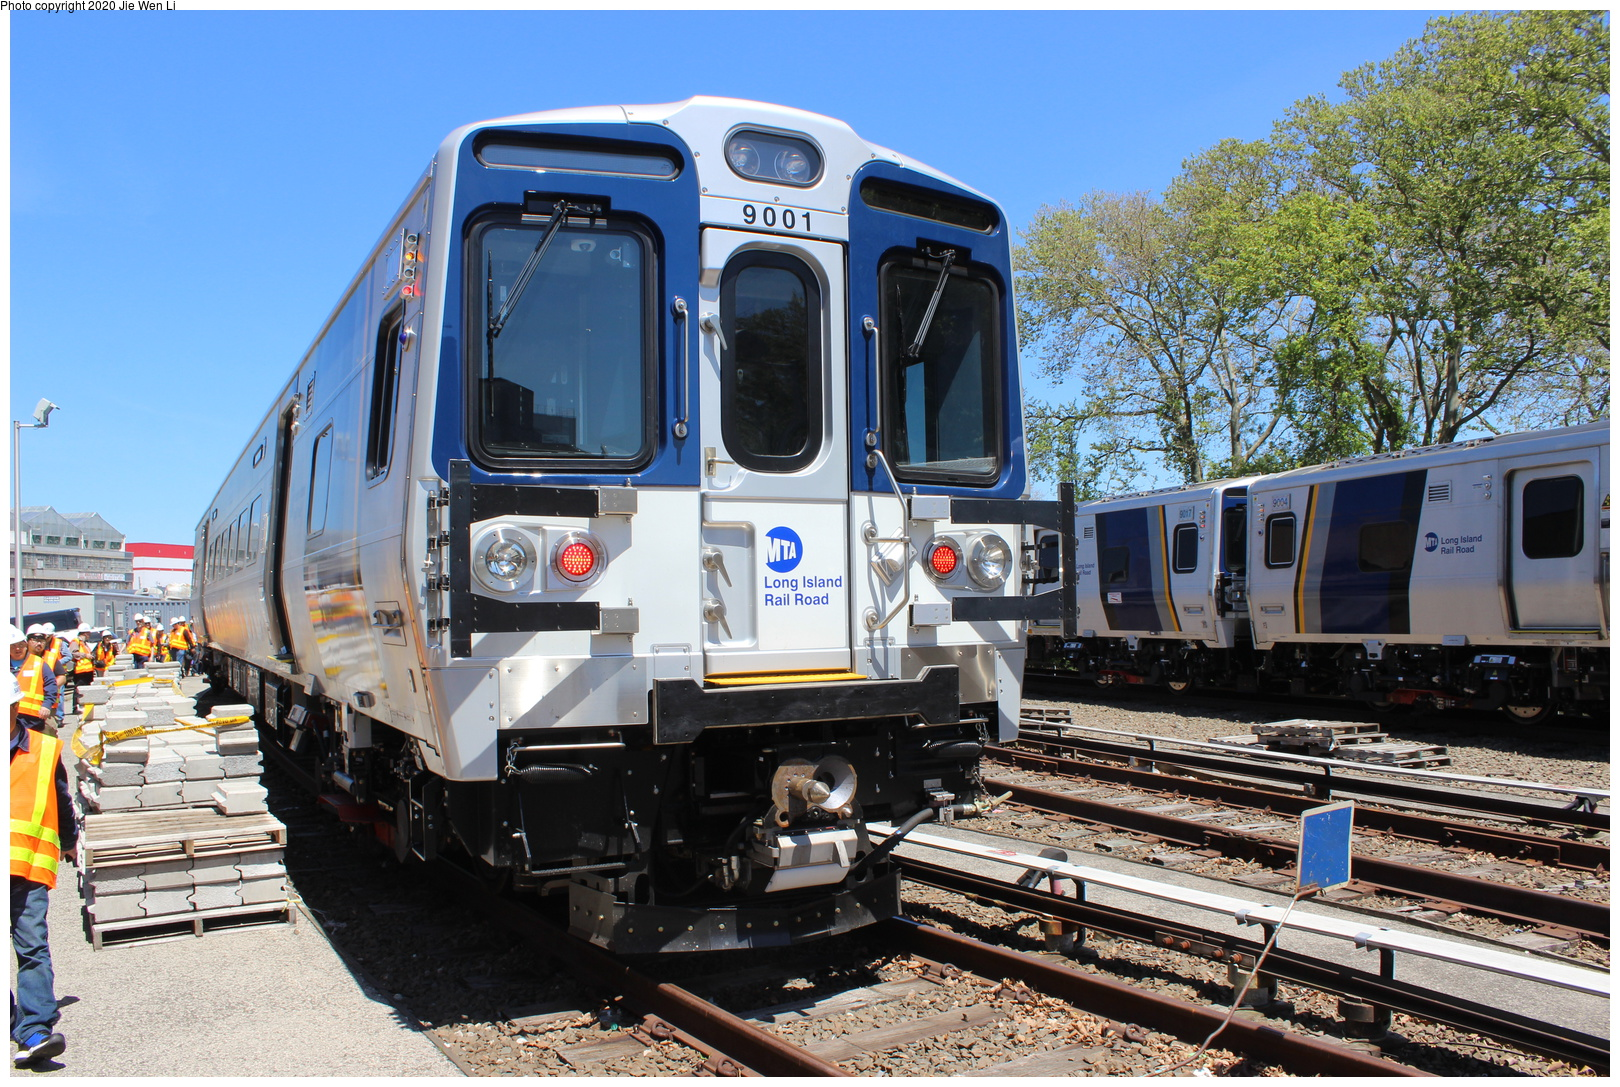 (267k, 1044x988)<br><b>Country:</b> United States<br><b>City:</b> New York<br><b>System:</b> New York City Transit<br><b>Line:</b> 9th Avenue El<br><b>Location:</b> 155th Street <br><b>Car:</b> Low-V 4215 <br><b>Photo by:</b> Joel Shanus<br><b>Viewed (this week/total):</b> 0 / 1637